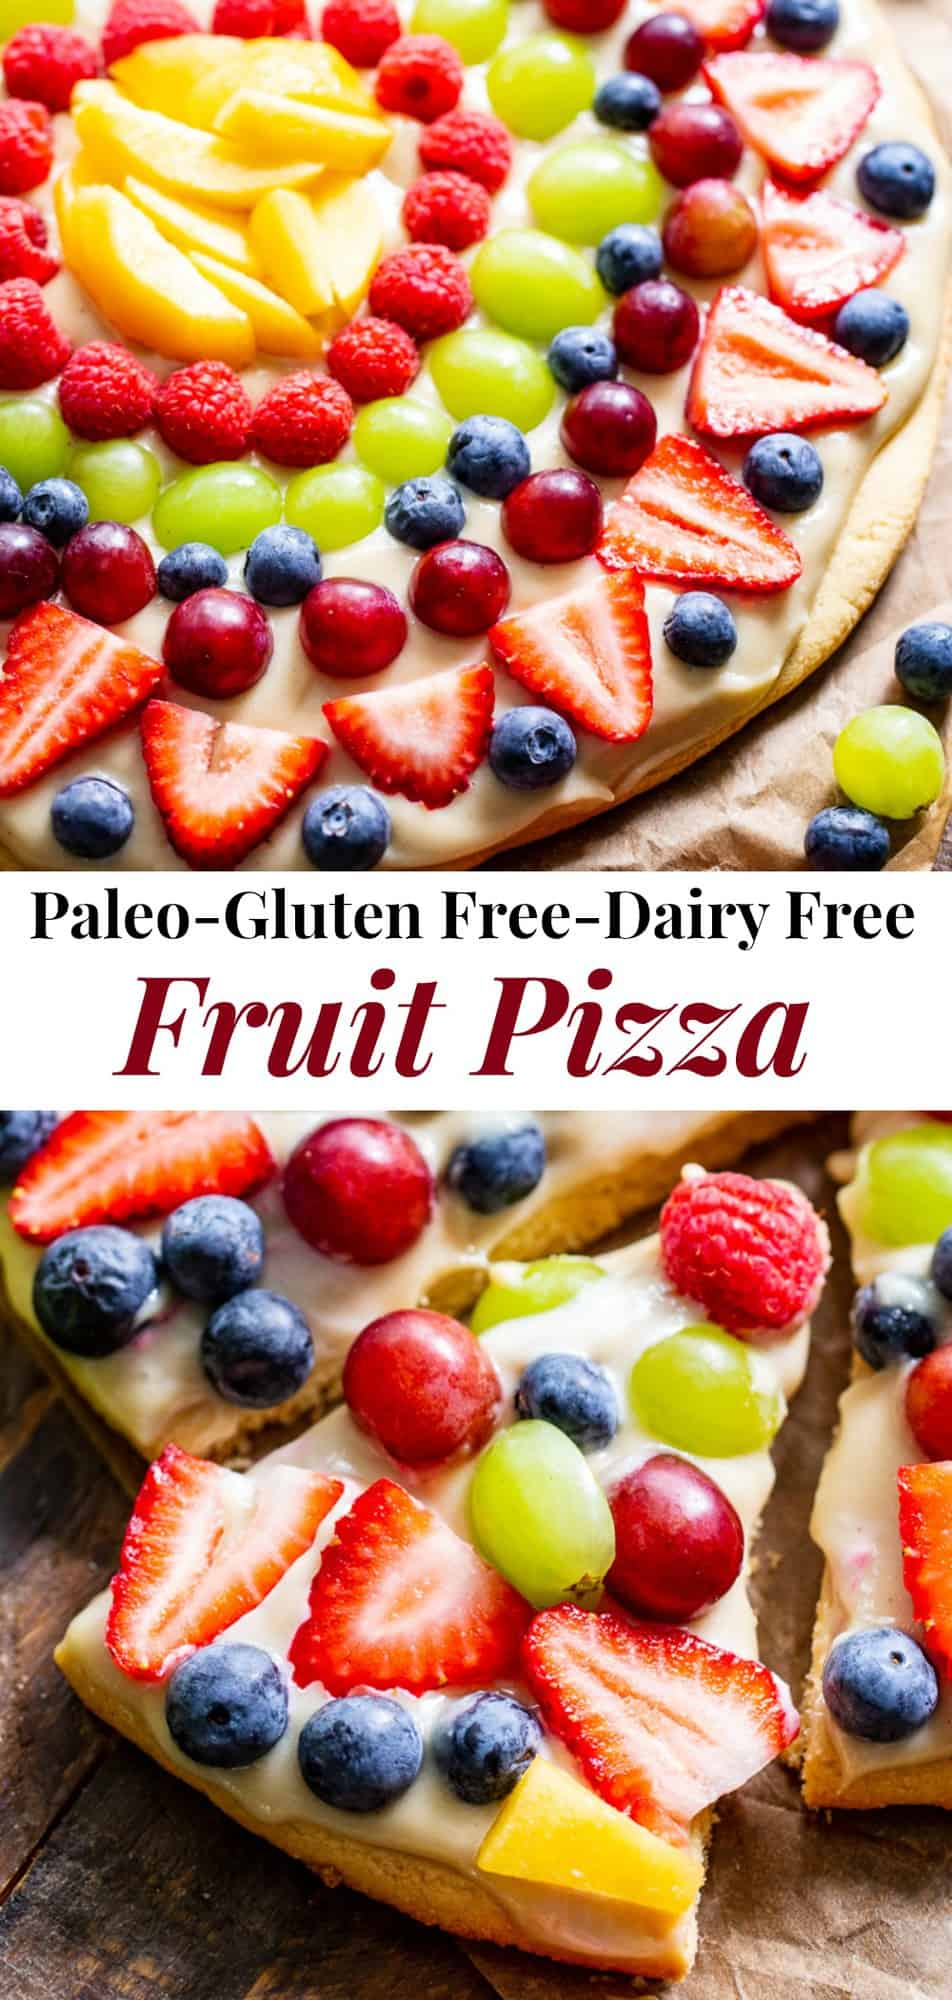 """This paleo fruit pizza has a sugar cookie crust with a cashew """"cream cheese"""" icing and all your favorite seasonal fruit on top! It's gluten-free, grain free, paleo, and the perfect dessert for summer gatherings. #paleo #cleaneating #glutenfree #healthydessert #fruitpizza"""